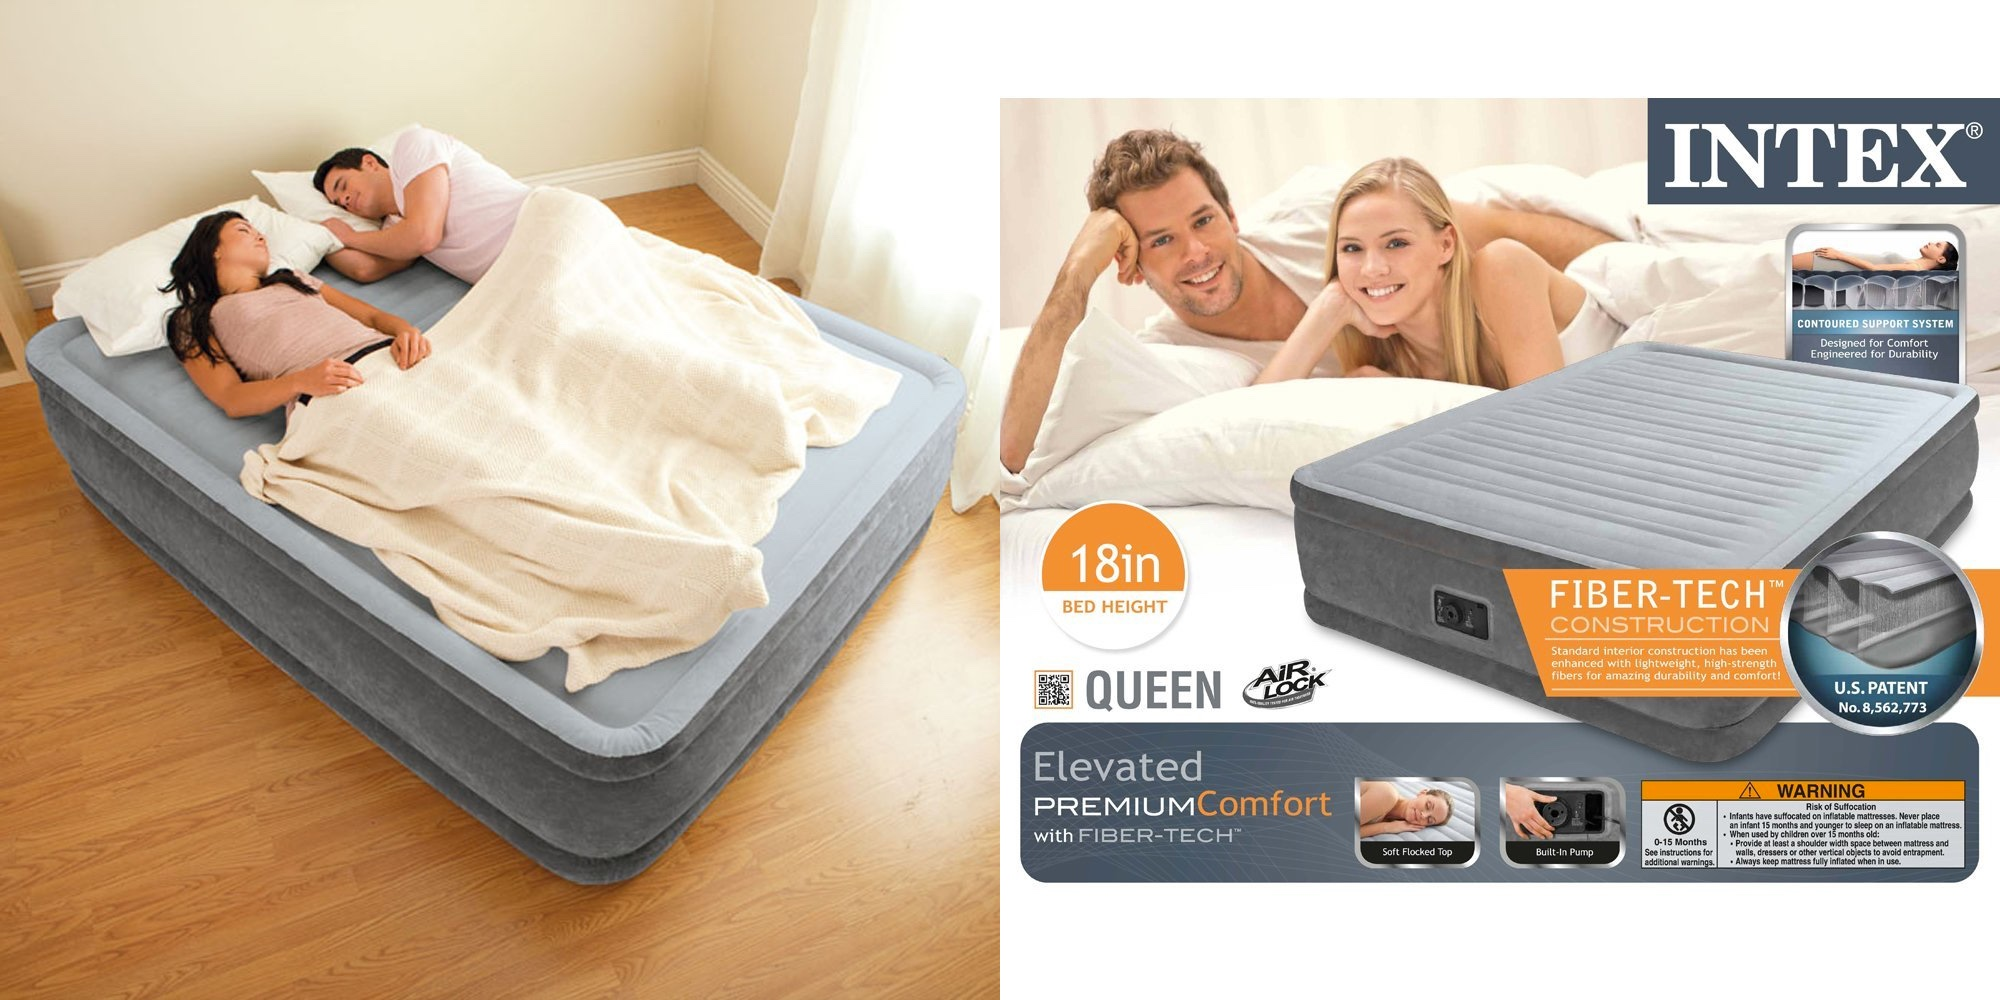 intex-comfort-plush-elevated-dura-beam-airbed-bed-height-18%22-queen